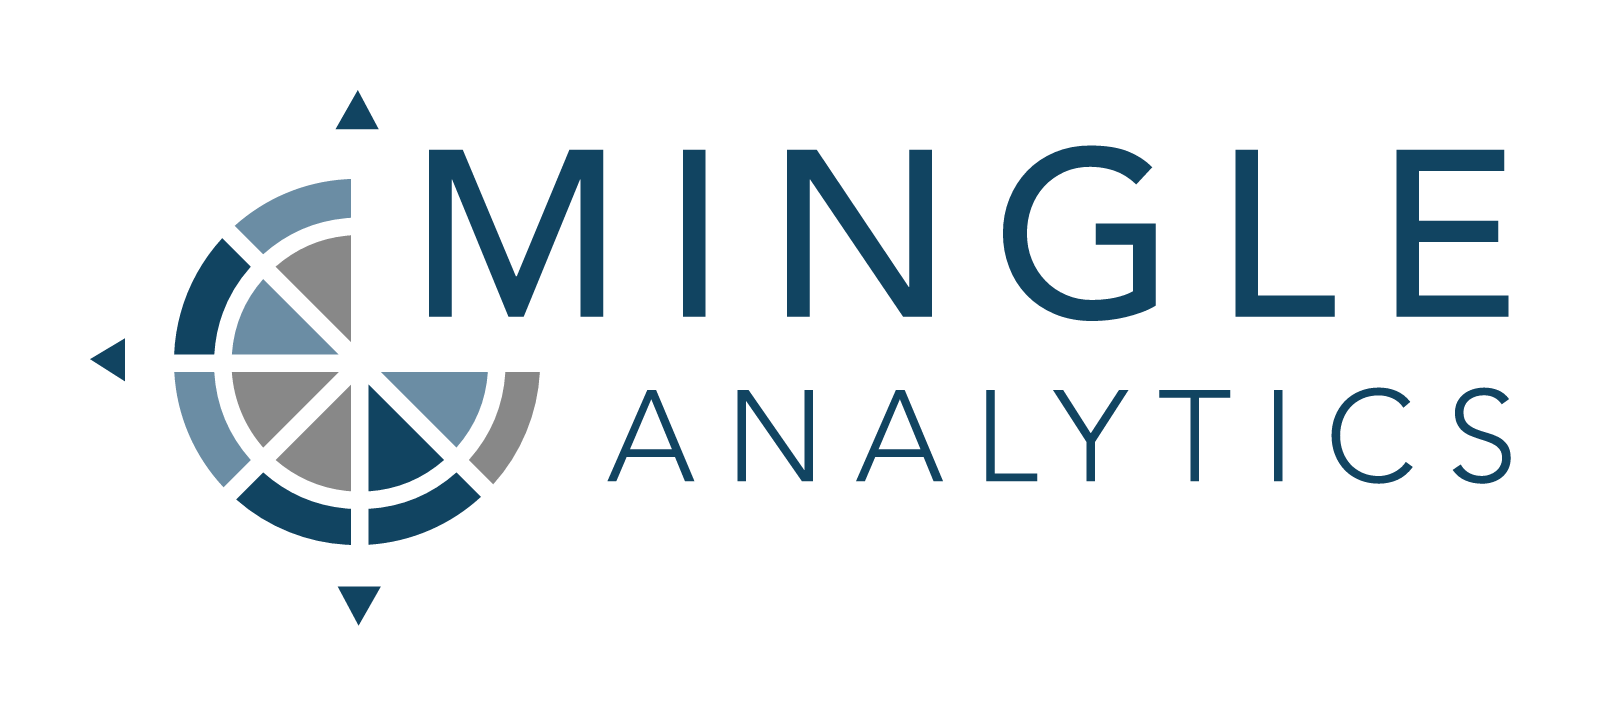 Paris, ME    2016, Healthcare    Mingle Analytics  (Mingle) helps healthcare practitioners comply with complex and rapidly evolving Medicare quality reporting requirements, by blending advanced analytics in its proprietary suite of software with the consultative services of a team of highly skilled healthcare professionals.